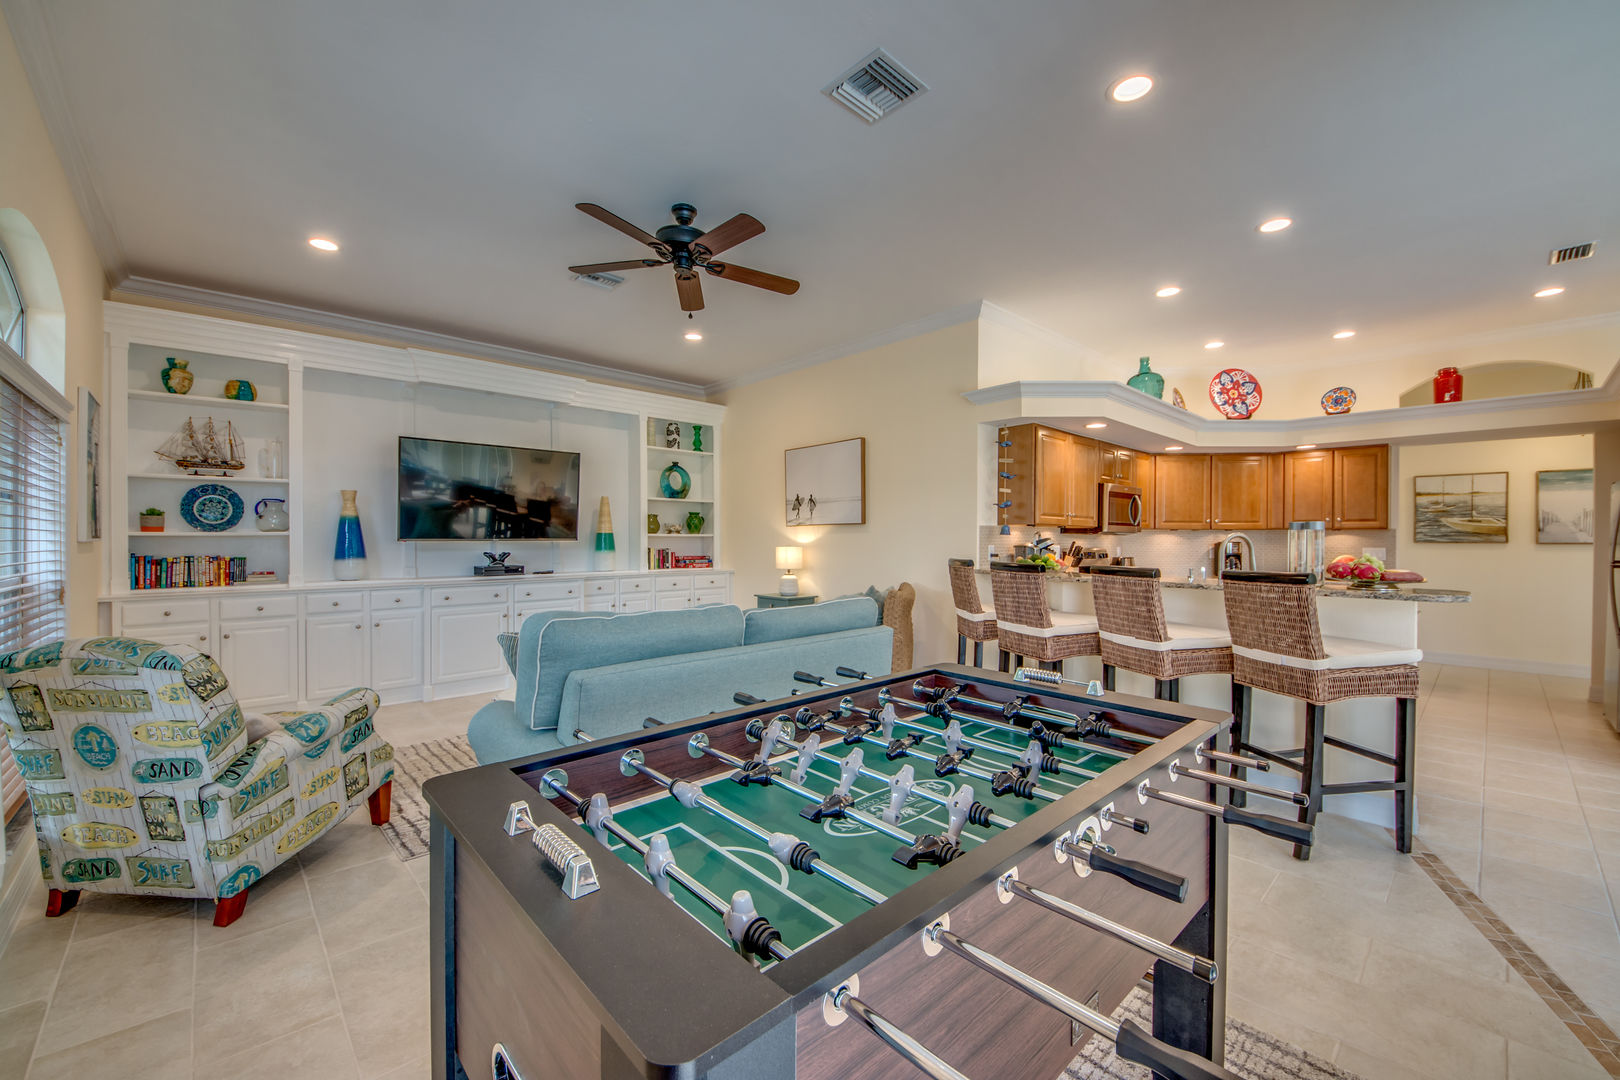 Casa Bonita Family Room with Foosball table